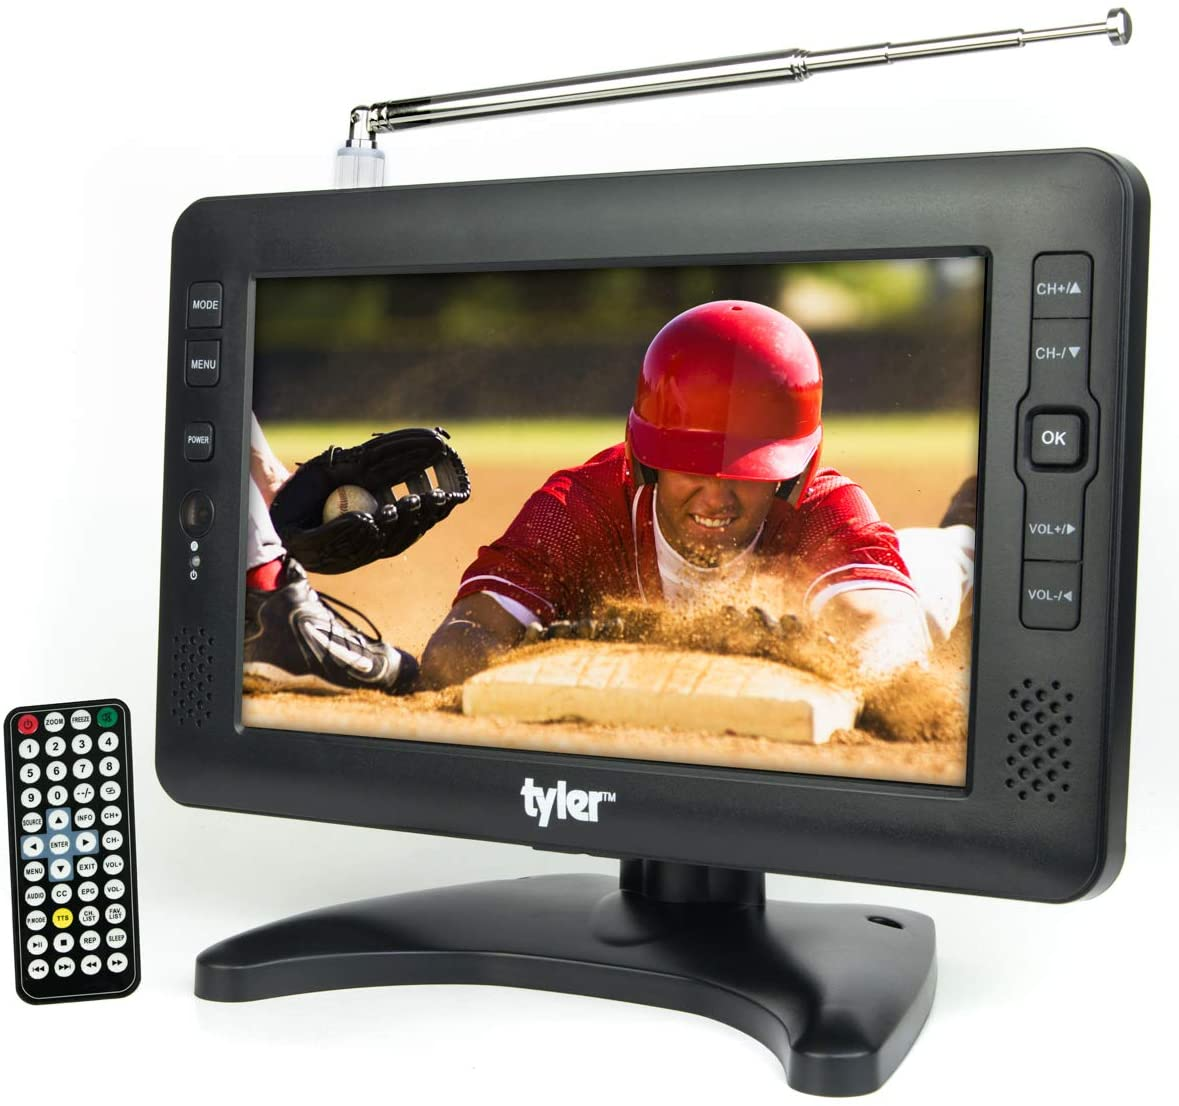 Tyler portable LCD TV with Detachable Antennas